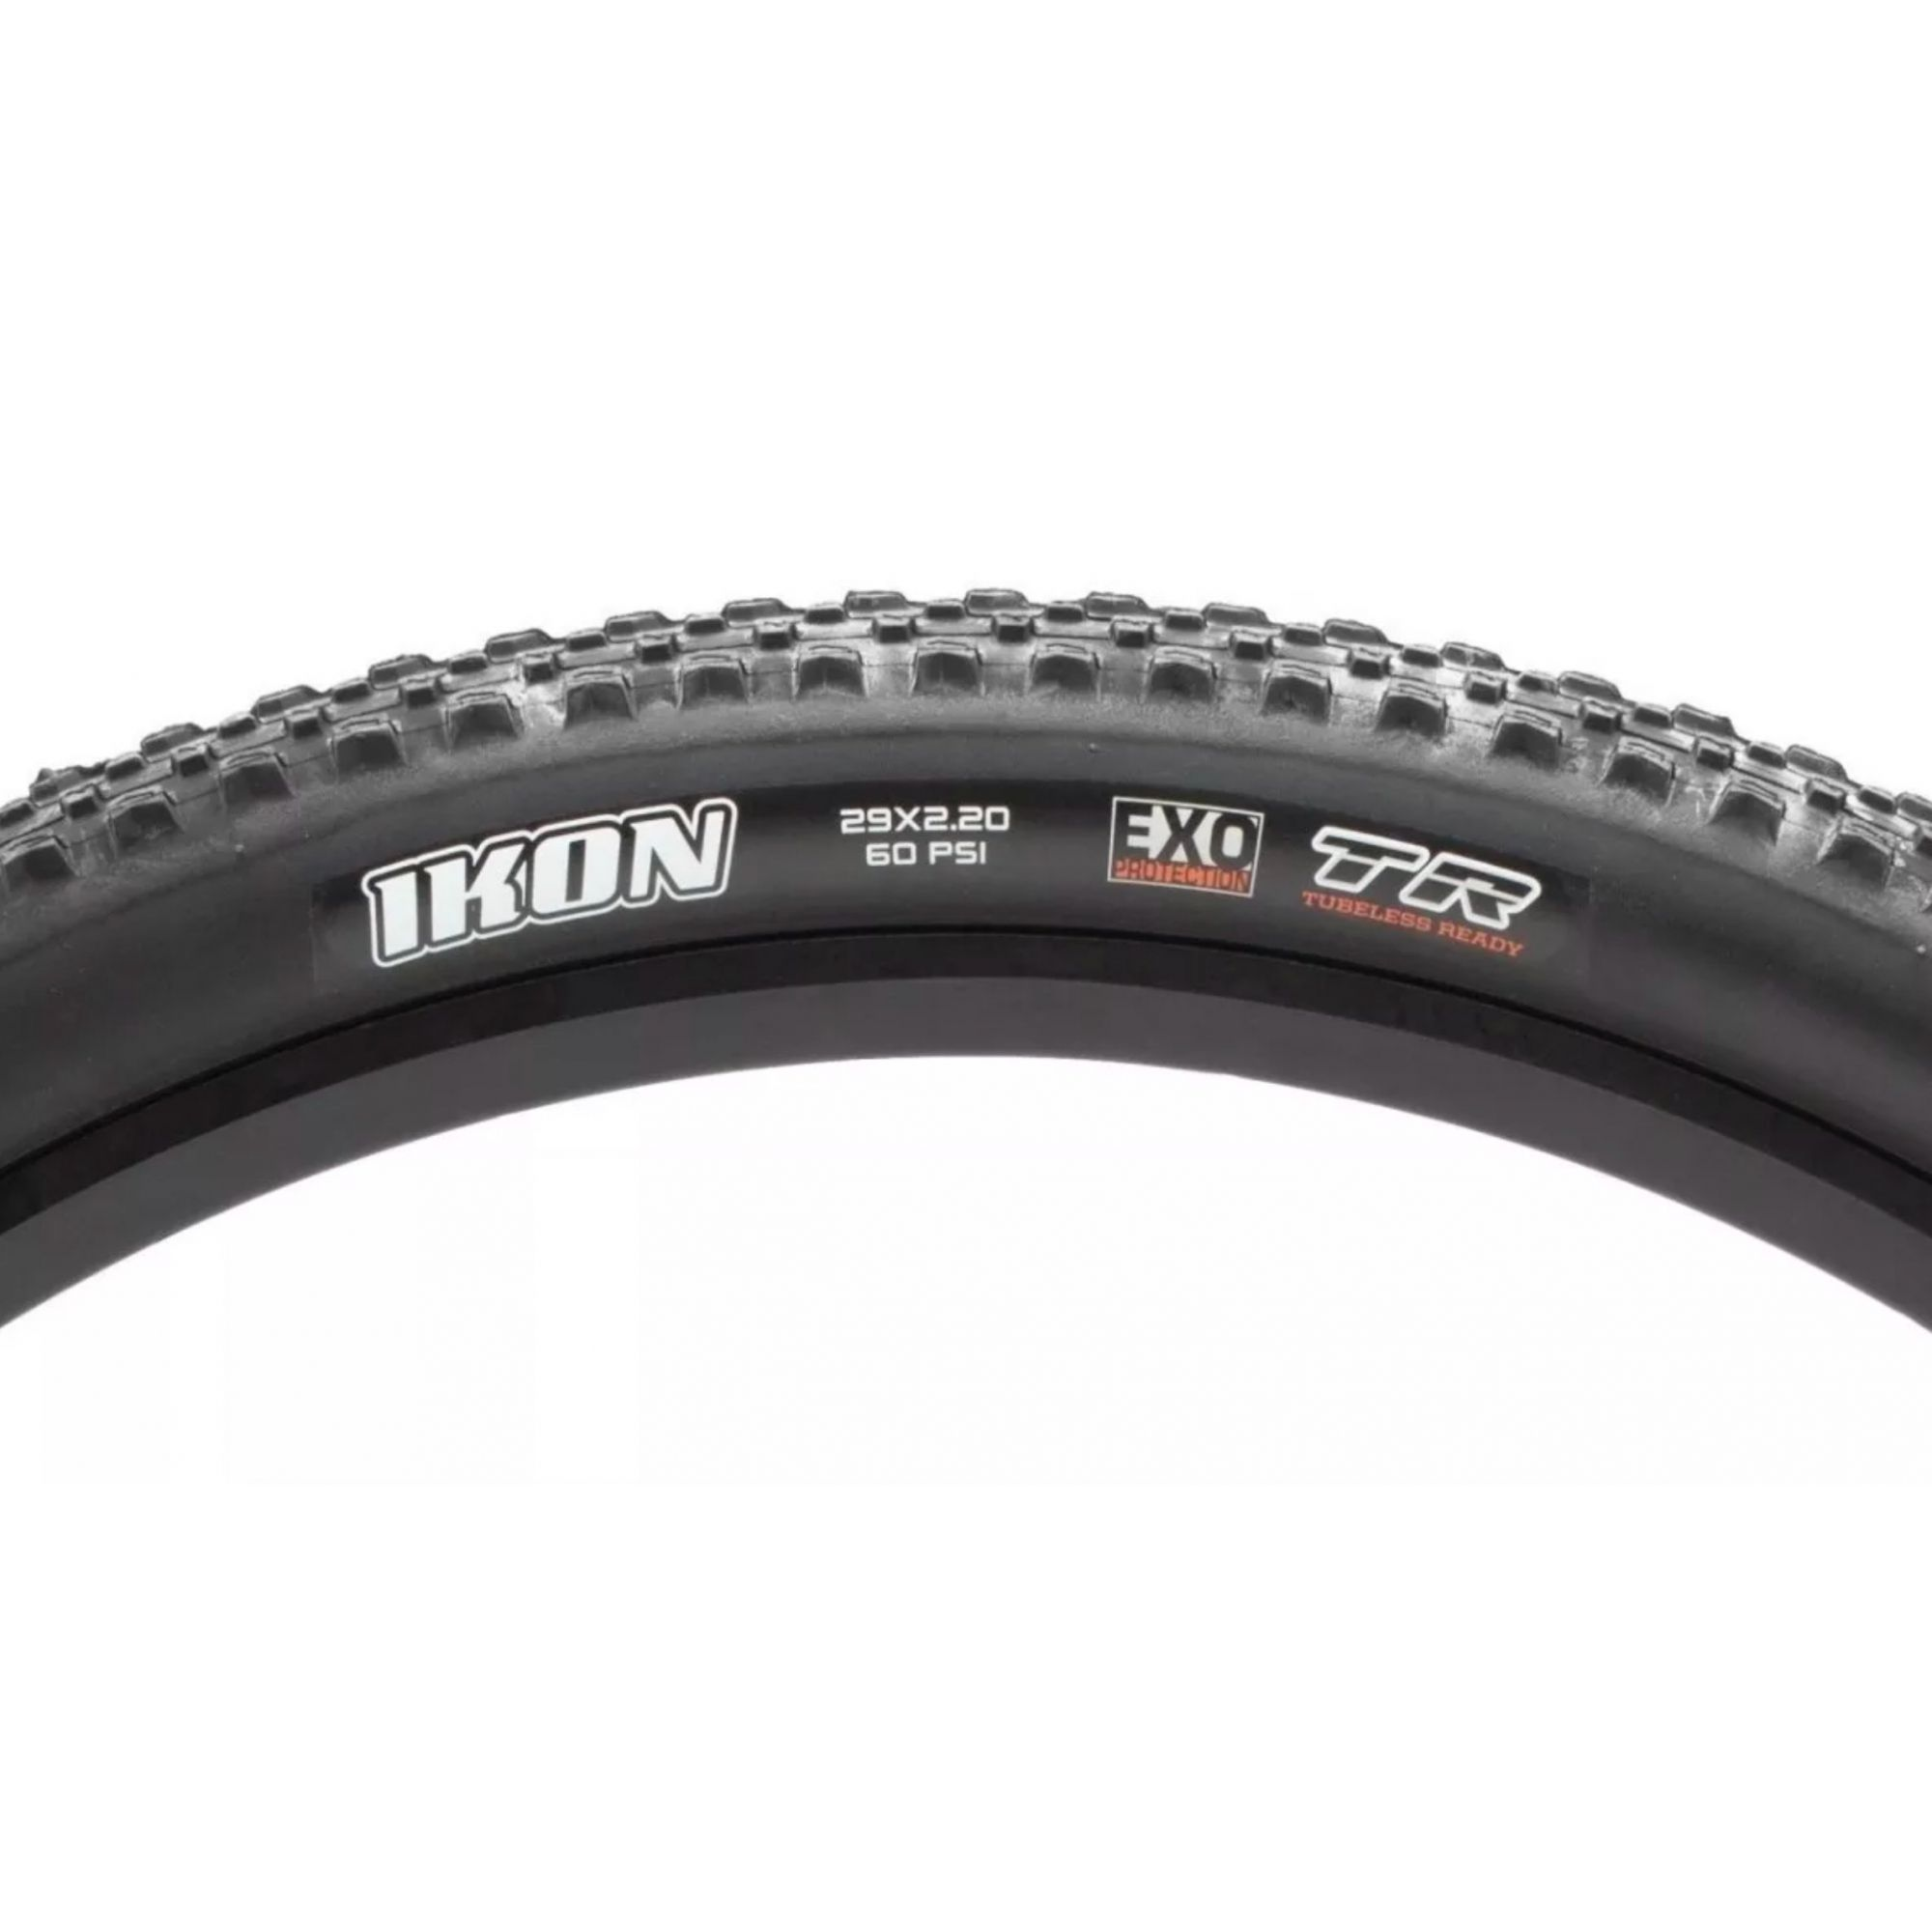 Pneu Maxxis Ikon 29x2.20 Exo Protection Tubeless Ready Top